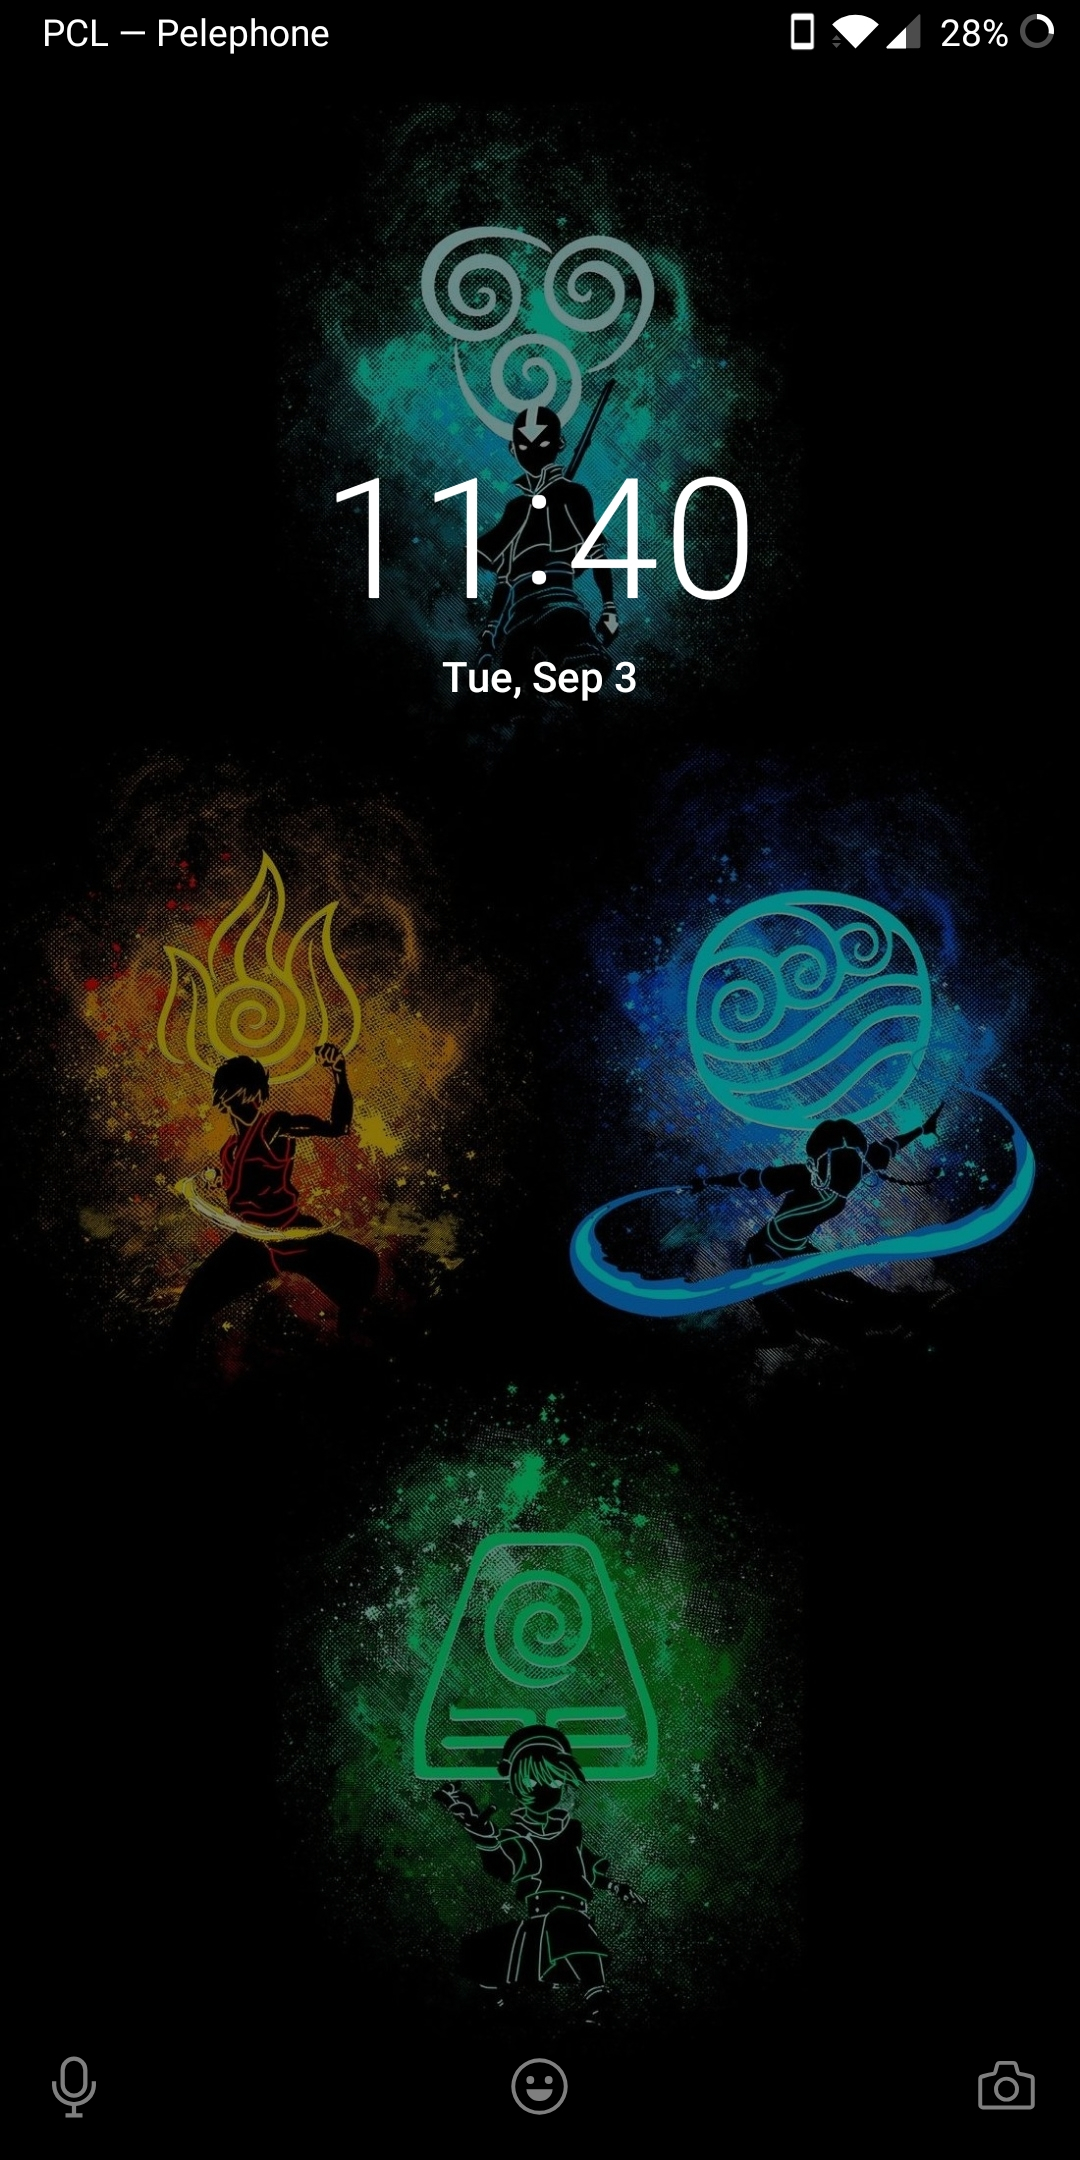 ioTxxbT avatar the last airbender lockscreen avatar the last